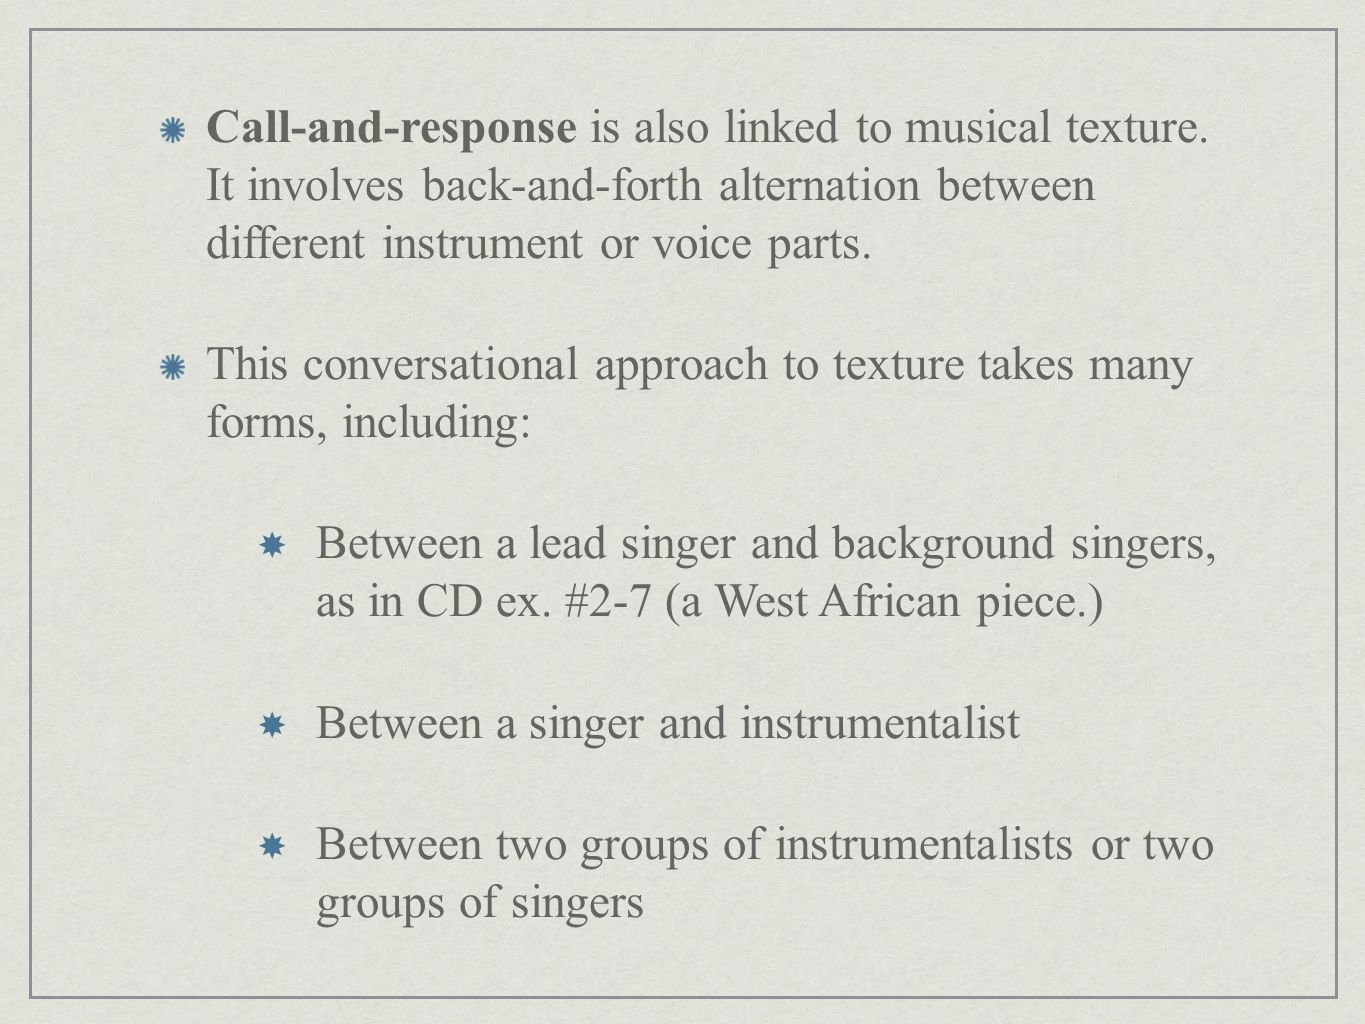 Call-and-response is also linked to musical texture